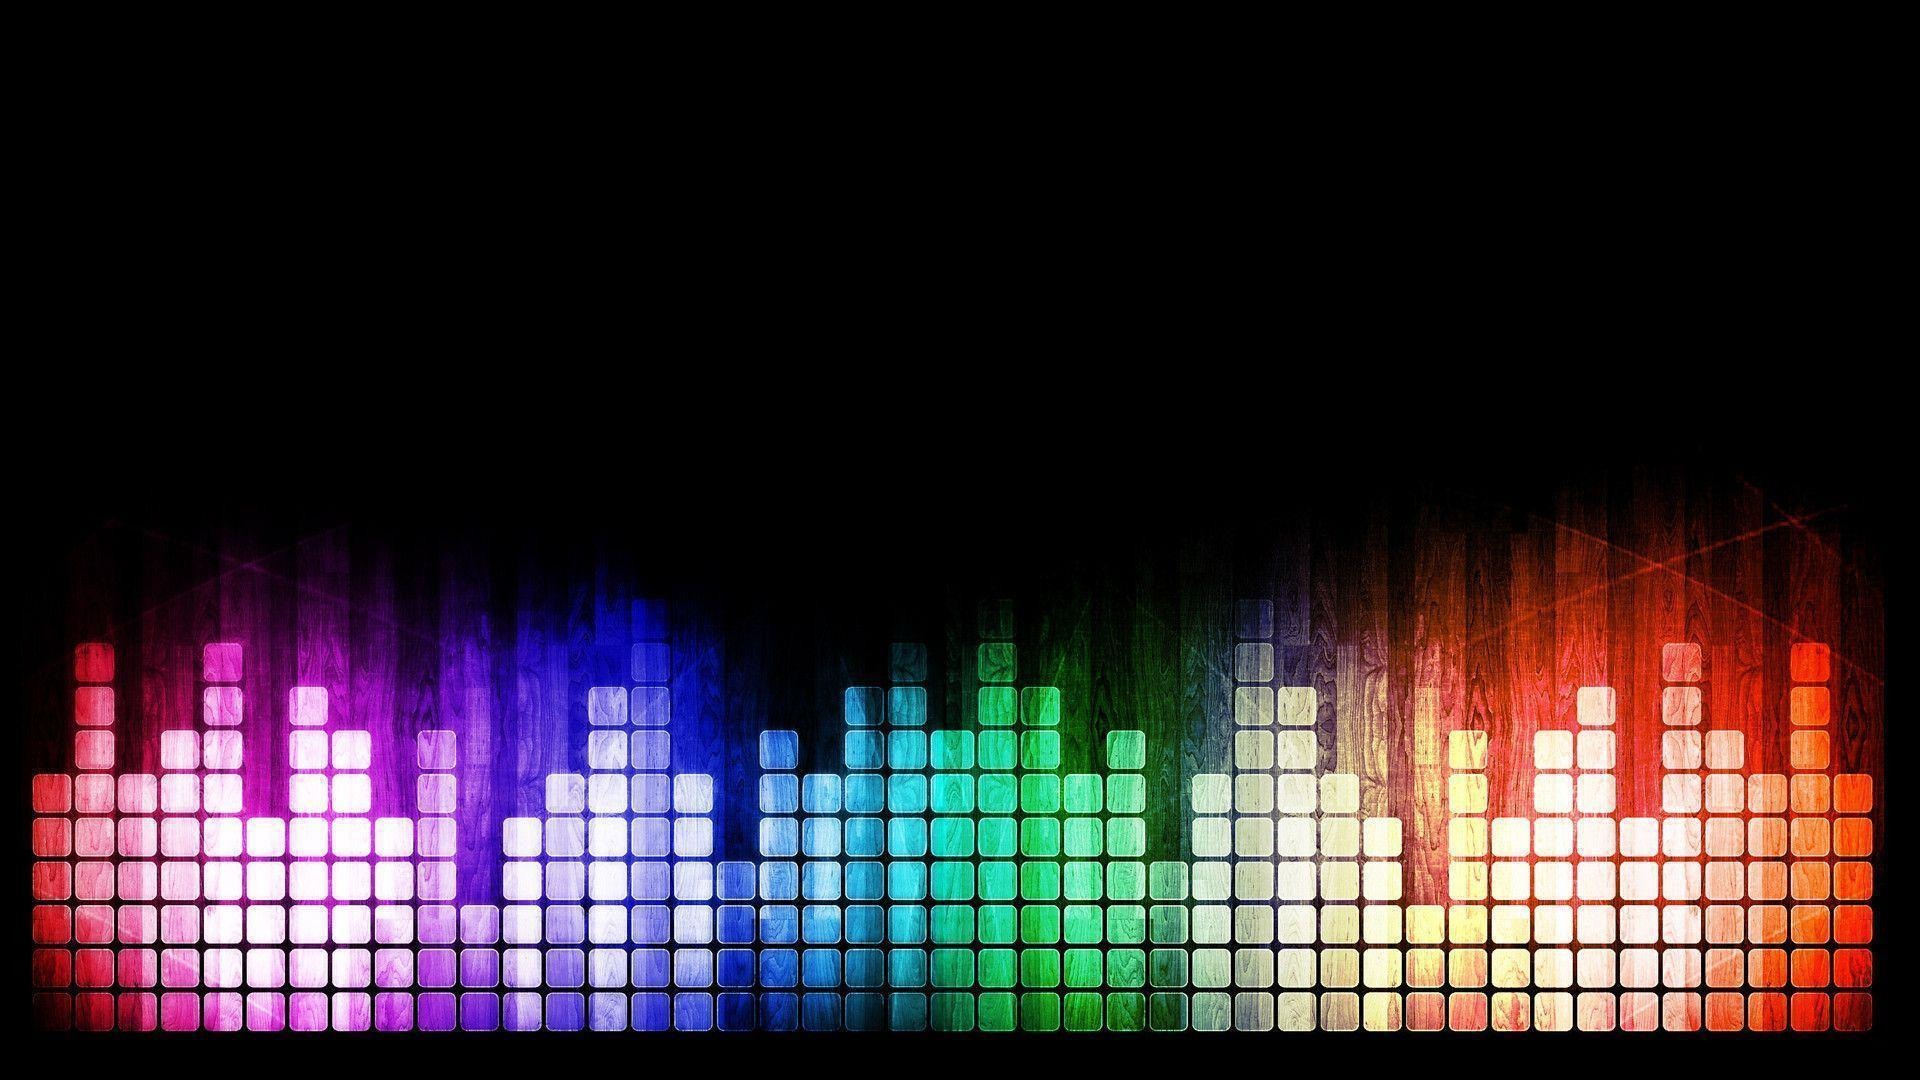 Rainbow Music Notes Background Hd Wallpaper Background Images: Awesome Music Backgrounds